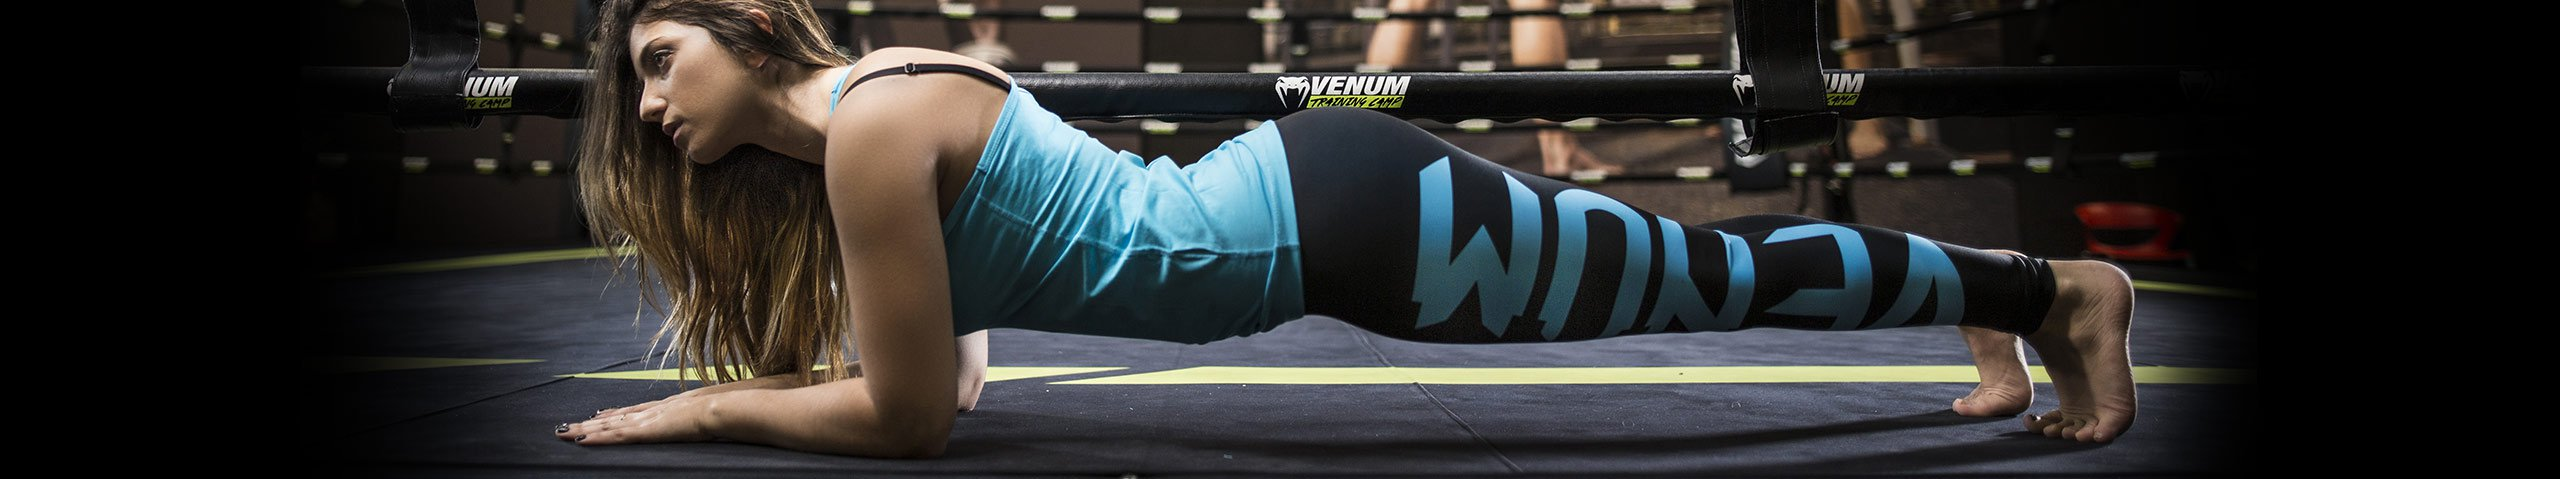 Women's pants : all Venum pants for women | Venum.com Россия